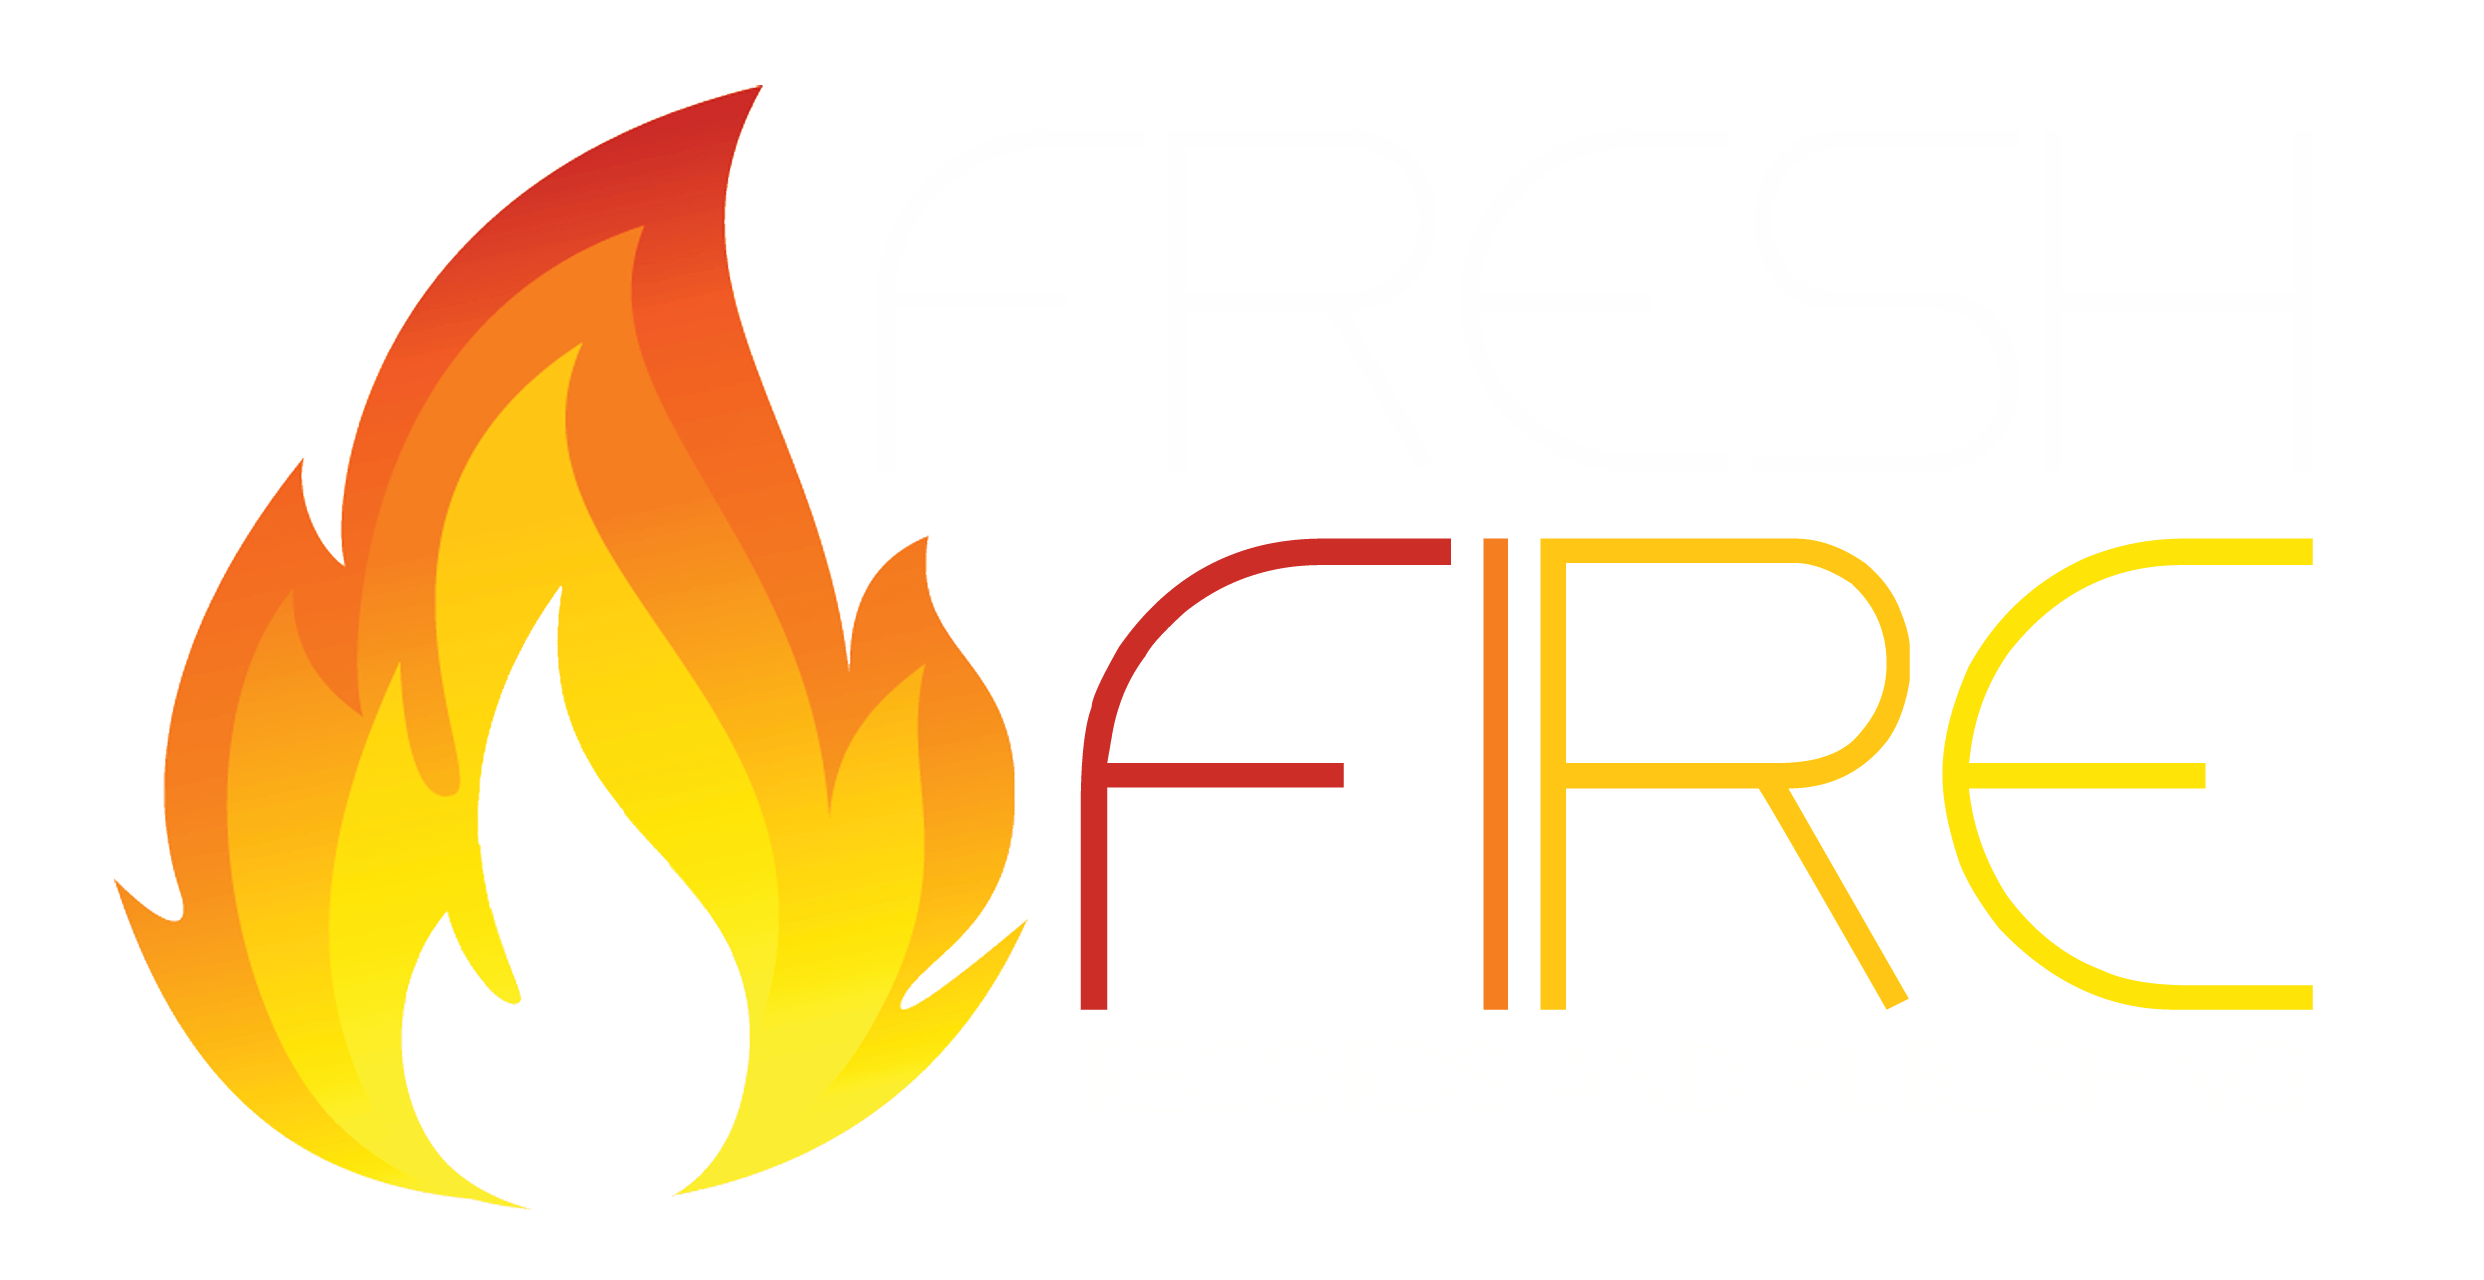 Fresh Fire Records logo transparent for black background